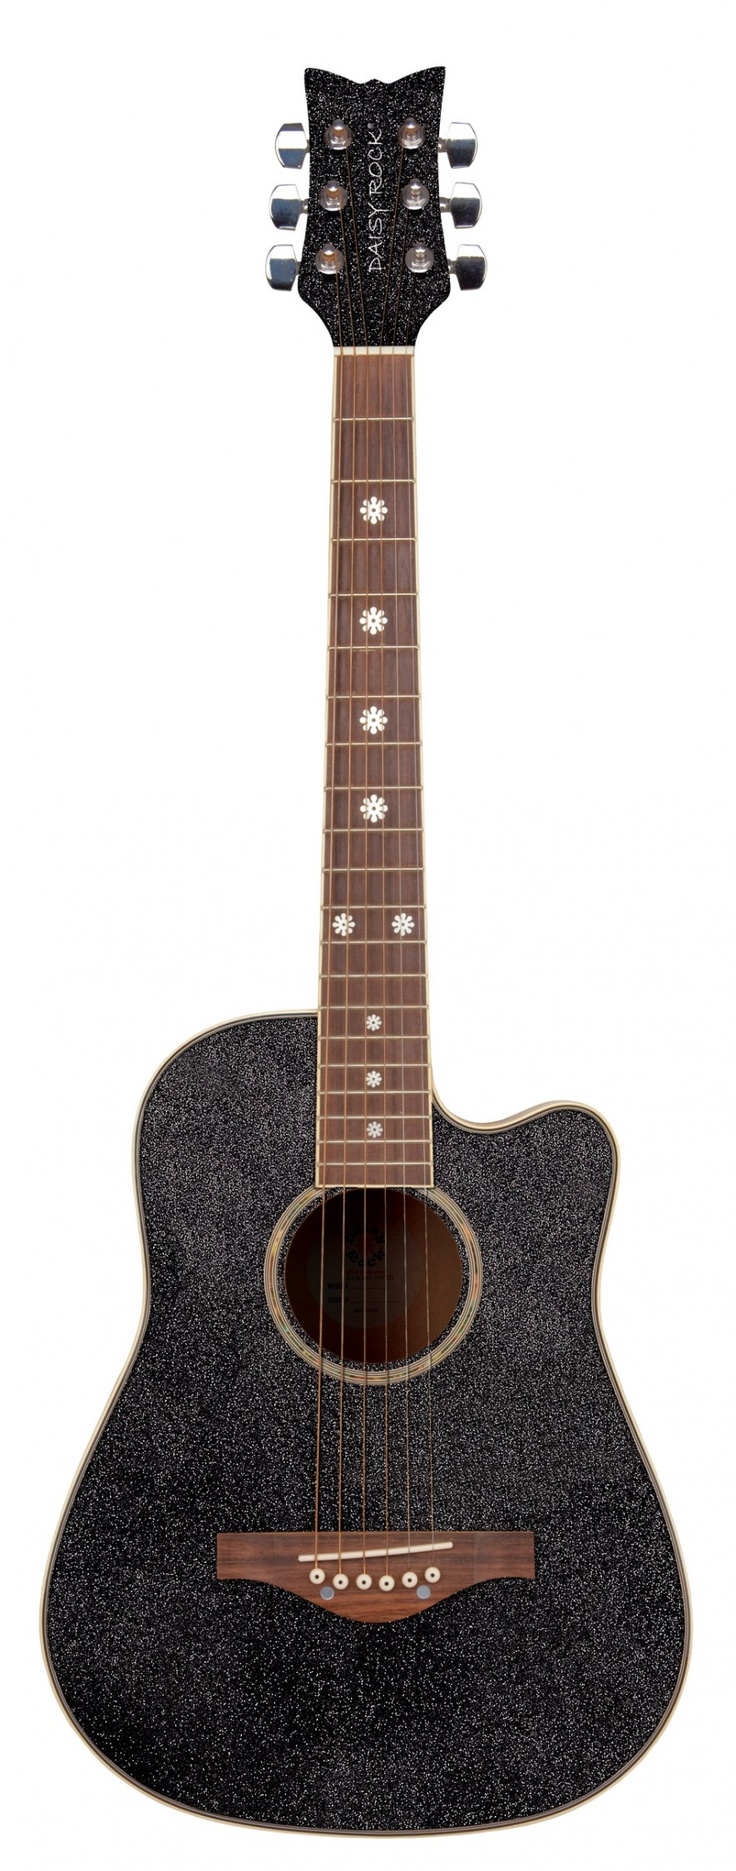 Wildwood Acoustic Short Scale | Daisy Rock Guitars the Girl Guitar Company